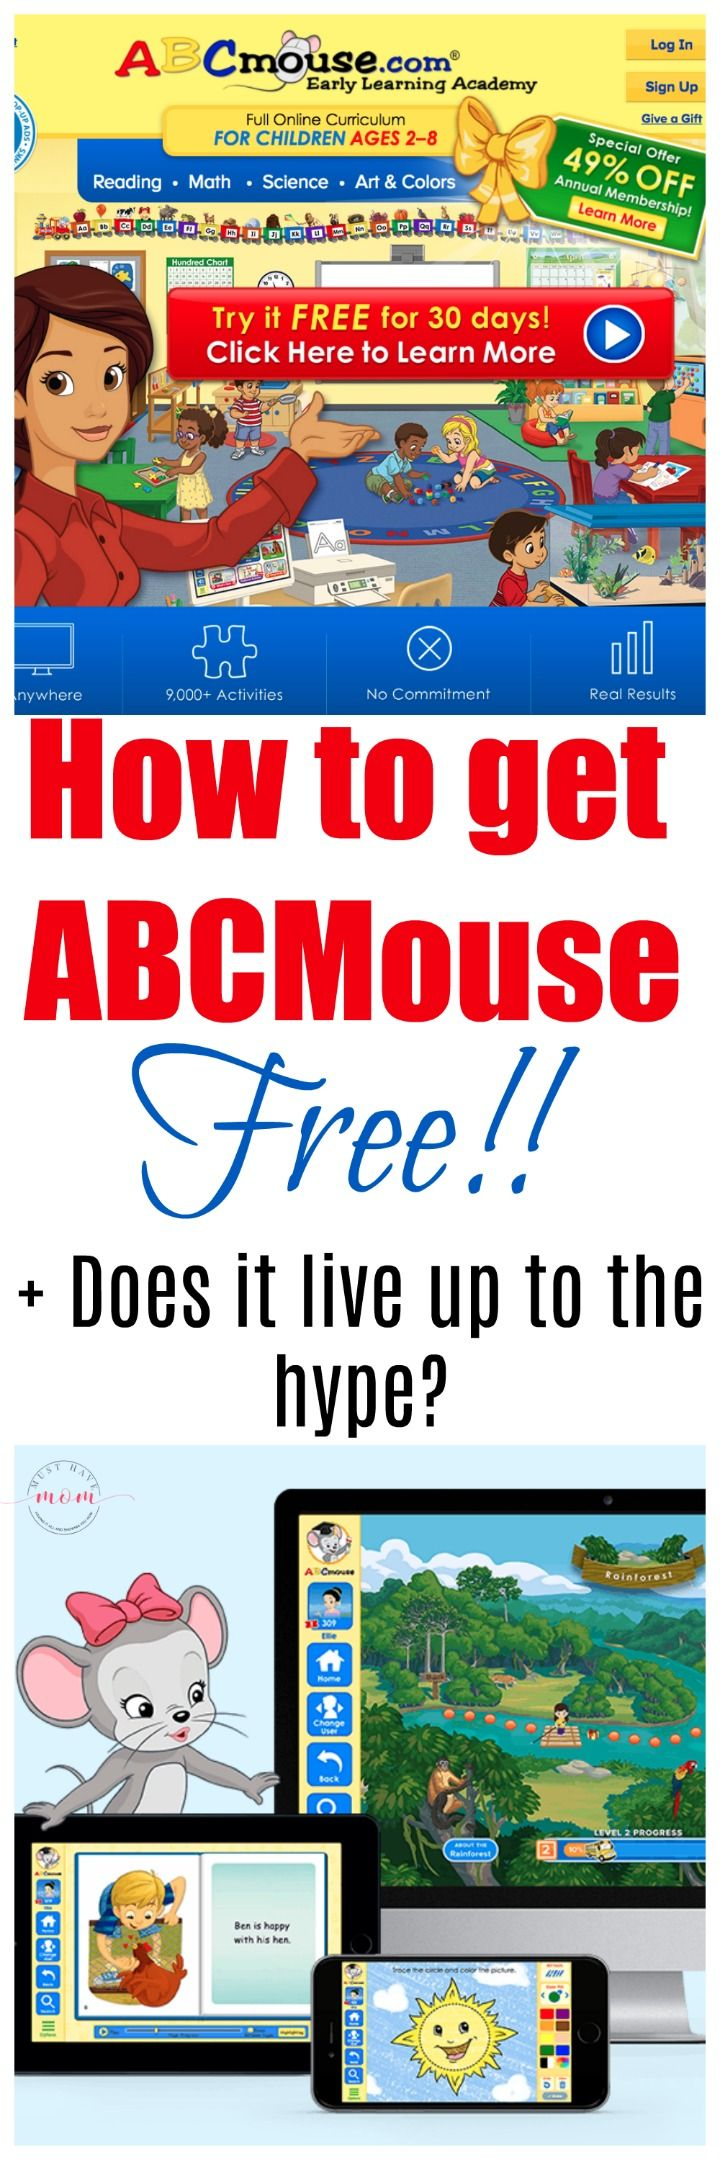 How to get ABCMouse FREE + Does it live up to all the hype